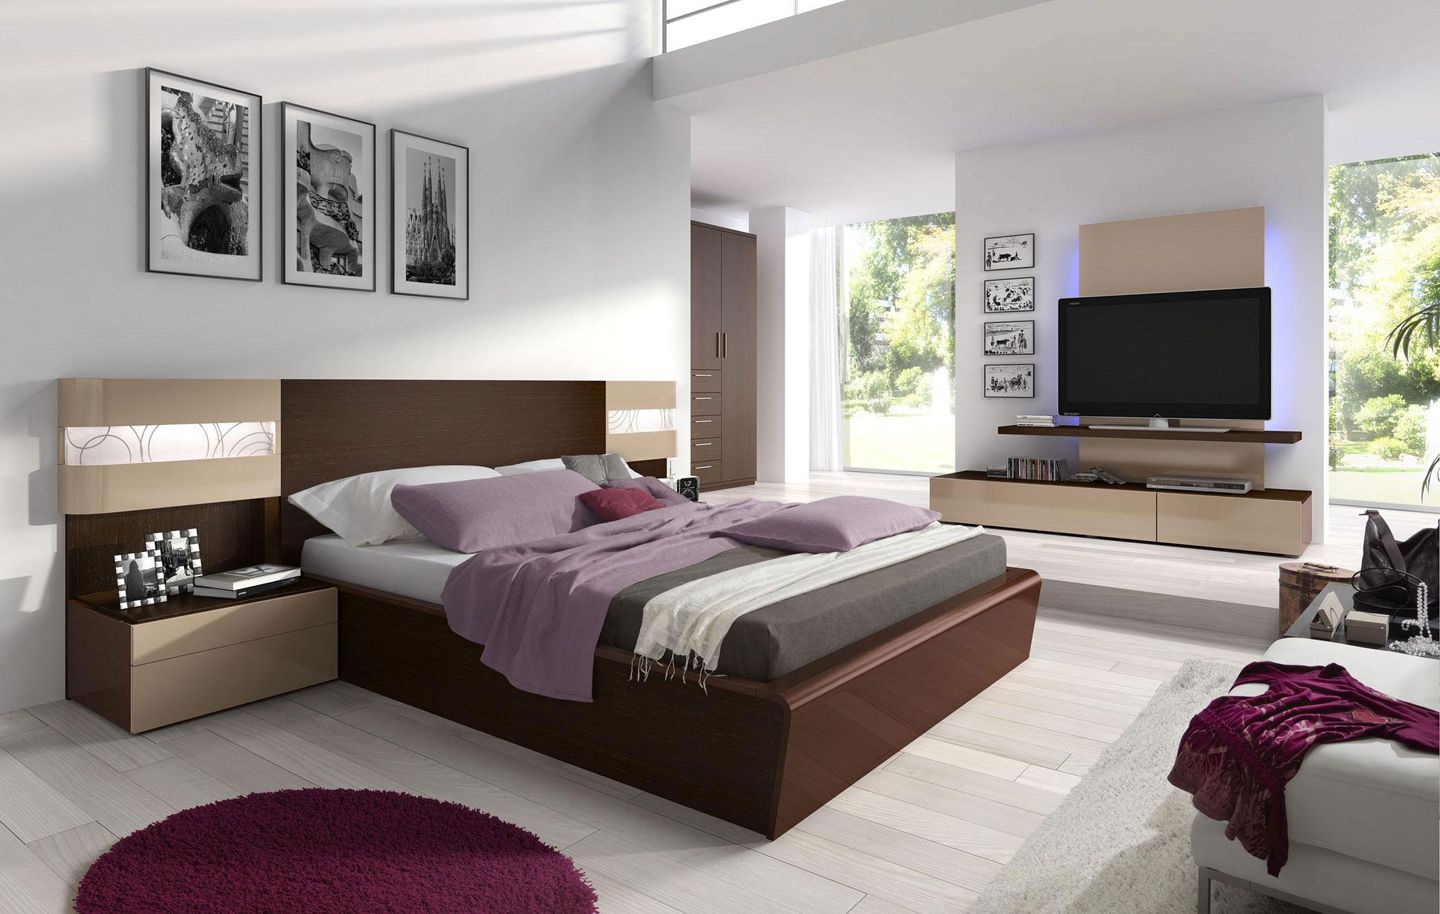 Modern Furniture Bedroom Design Bedrooms Good Design 5 On Bedroom Photos Interior Design